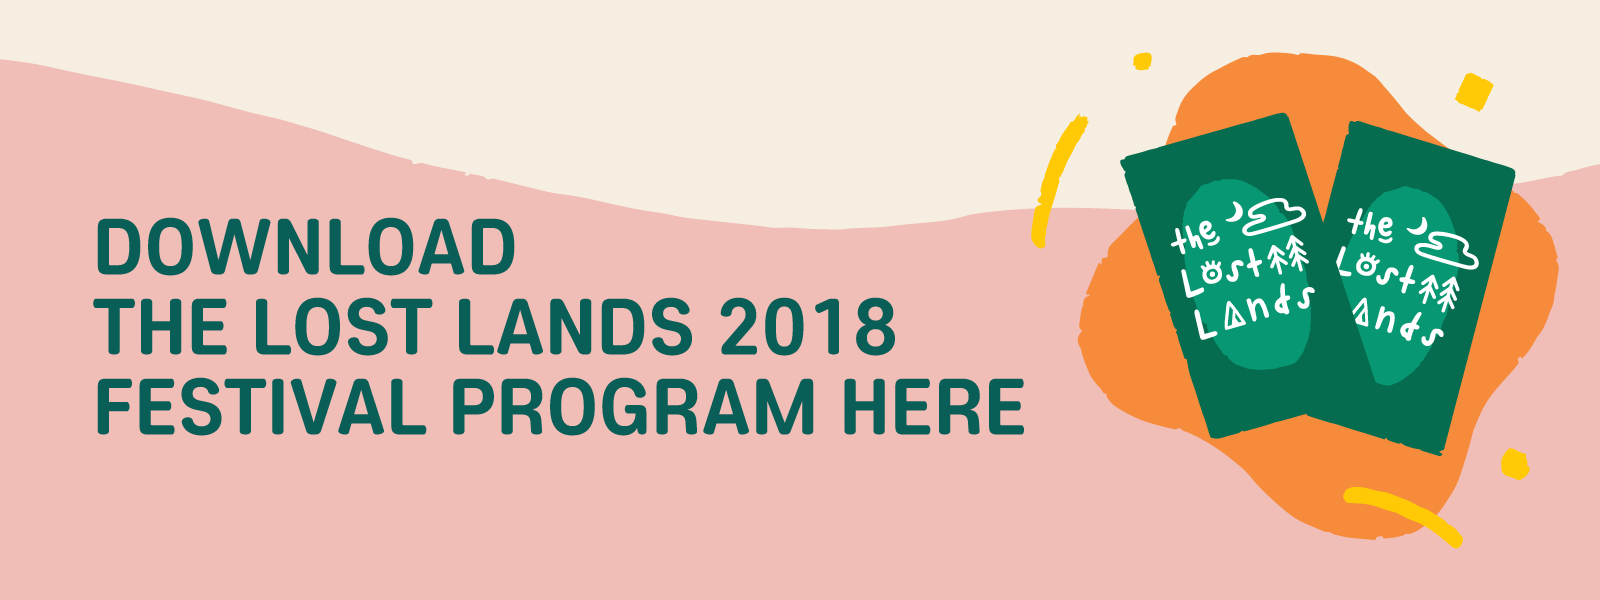 Click to download The Lost Lands 2018 Festival Program